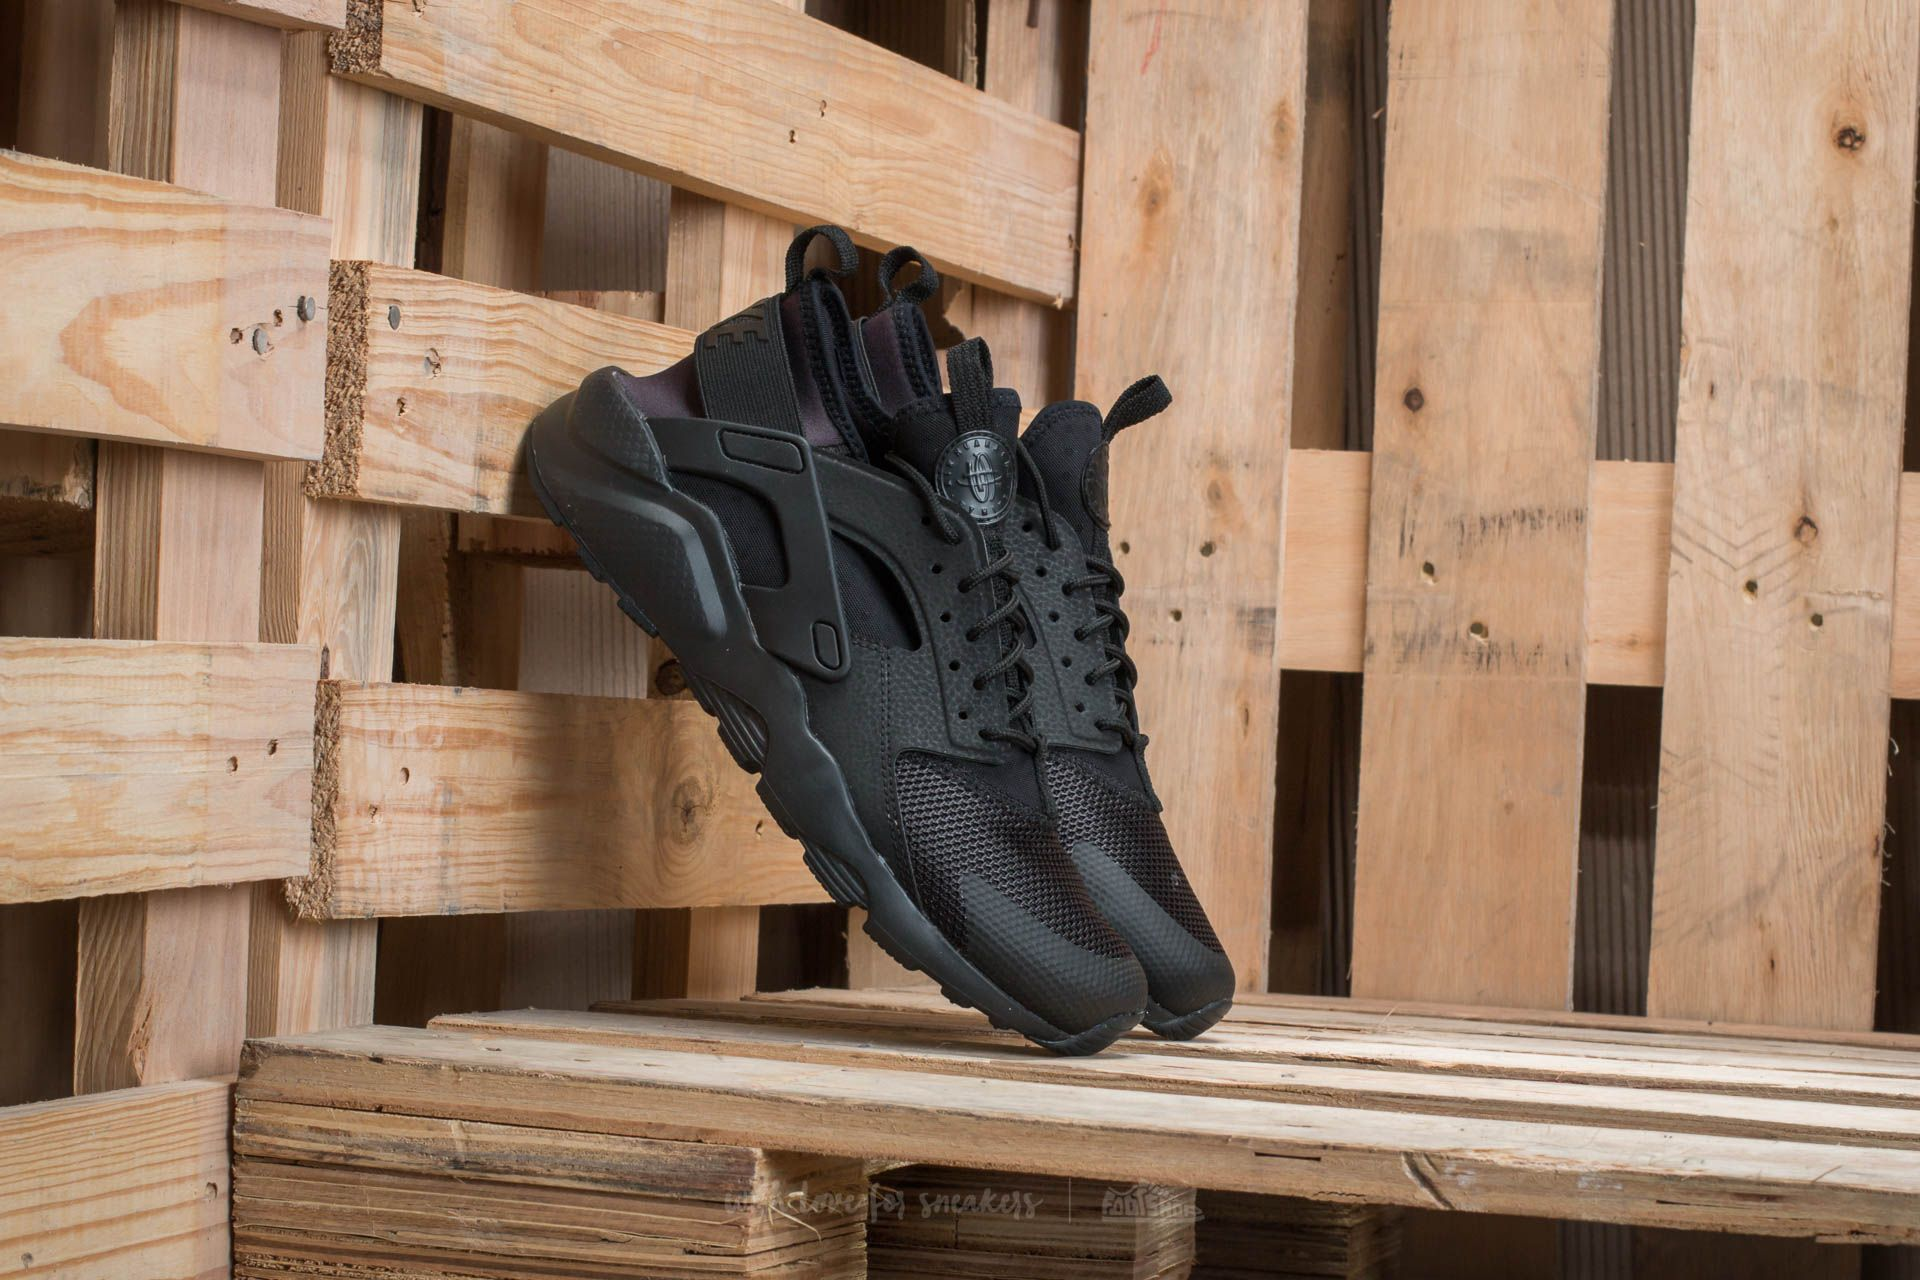 16de7b5d Nike Air Huarache Run Ultra Gs Black/ Black at a great price 208 лв купете